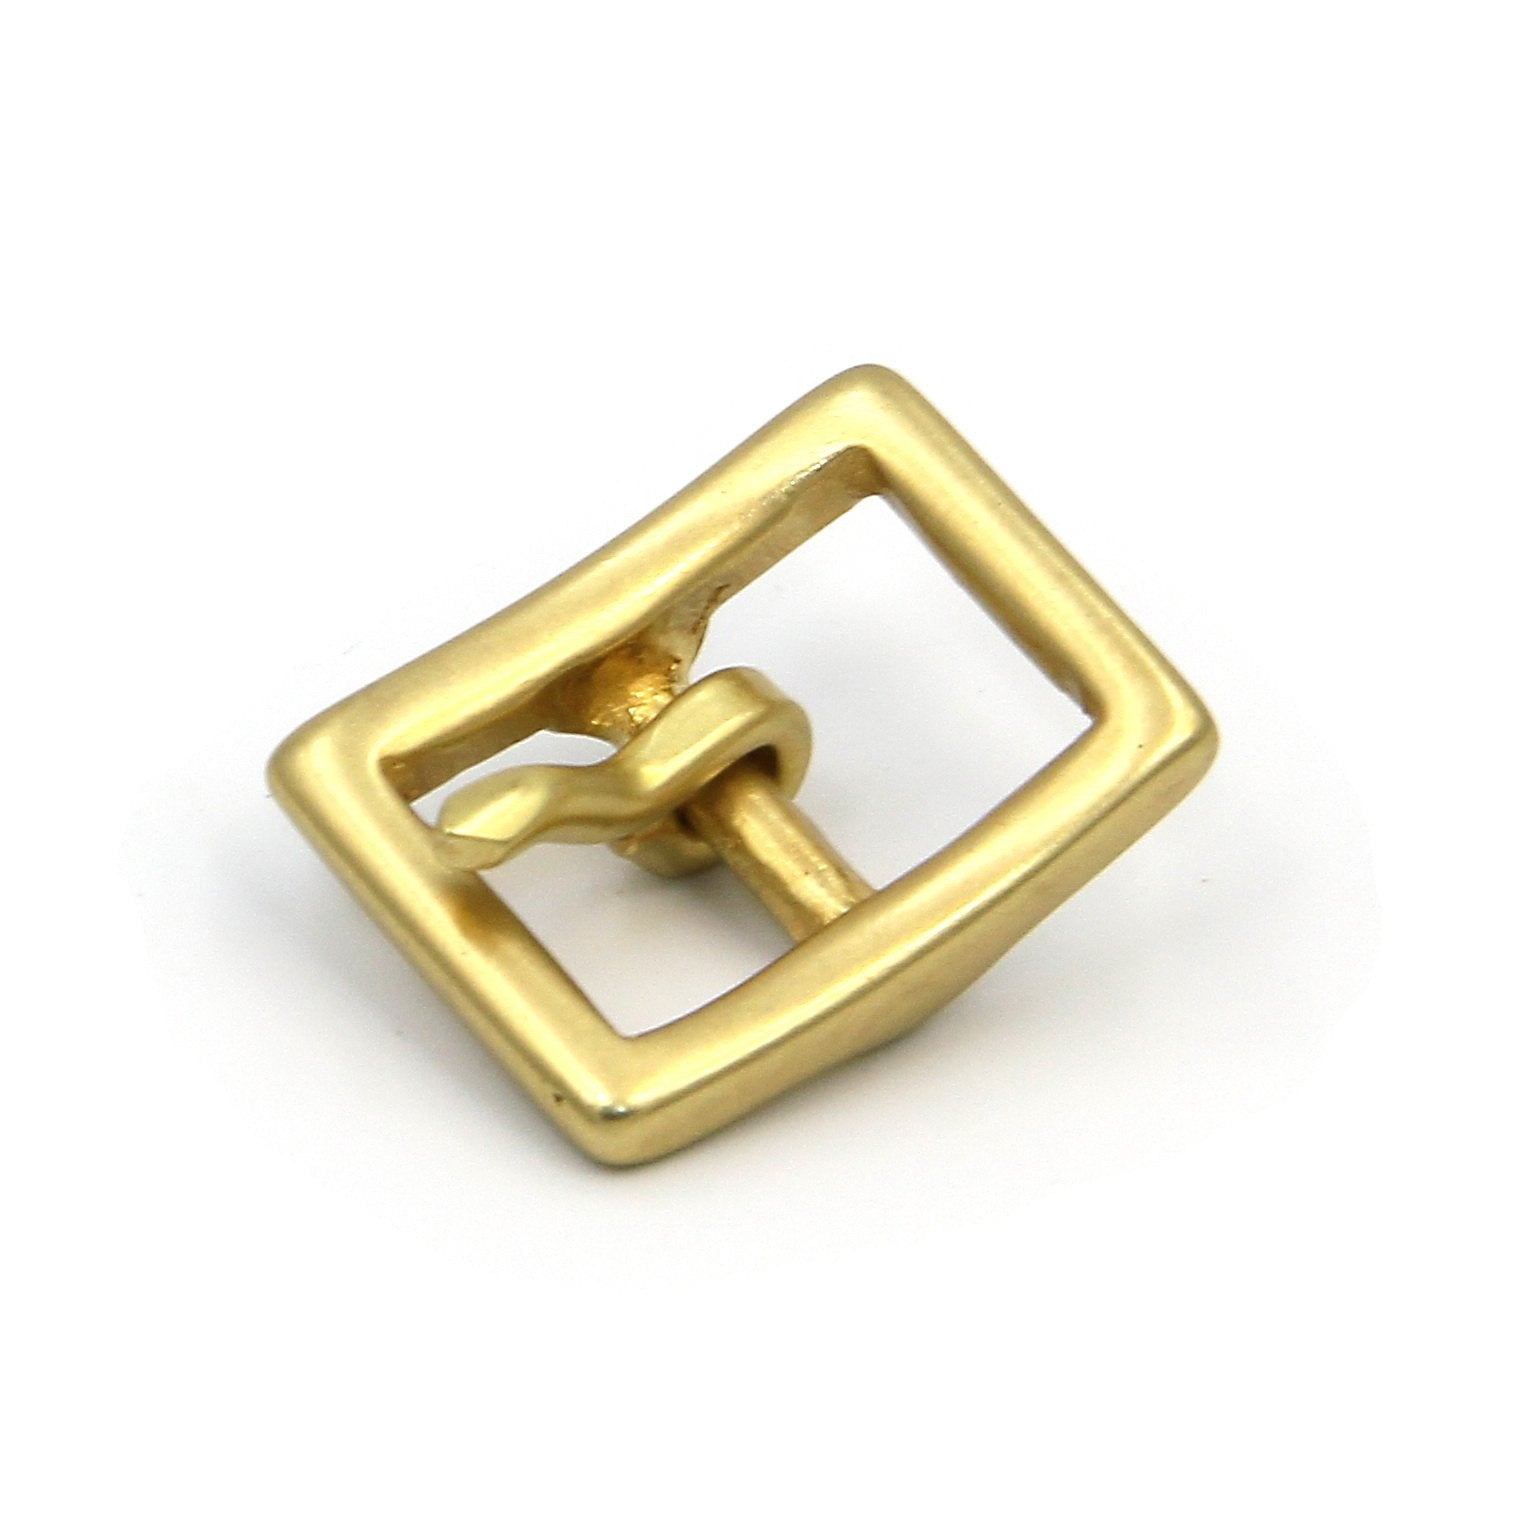 Pin Buckle Strap Brass Gold Yellow Belt 15mm - Metal Field Shop